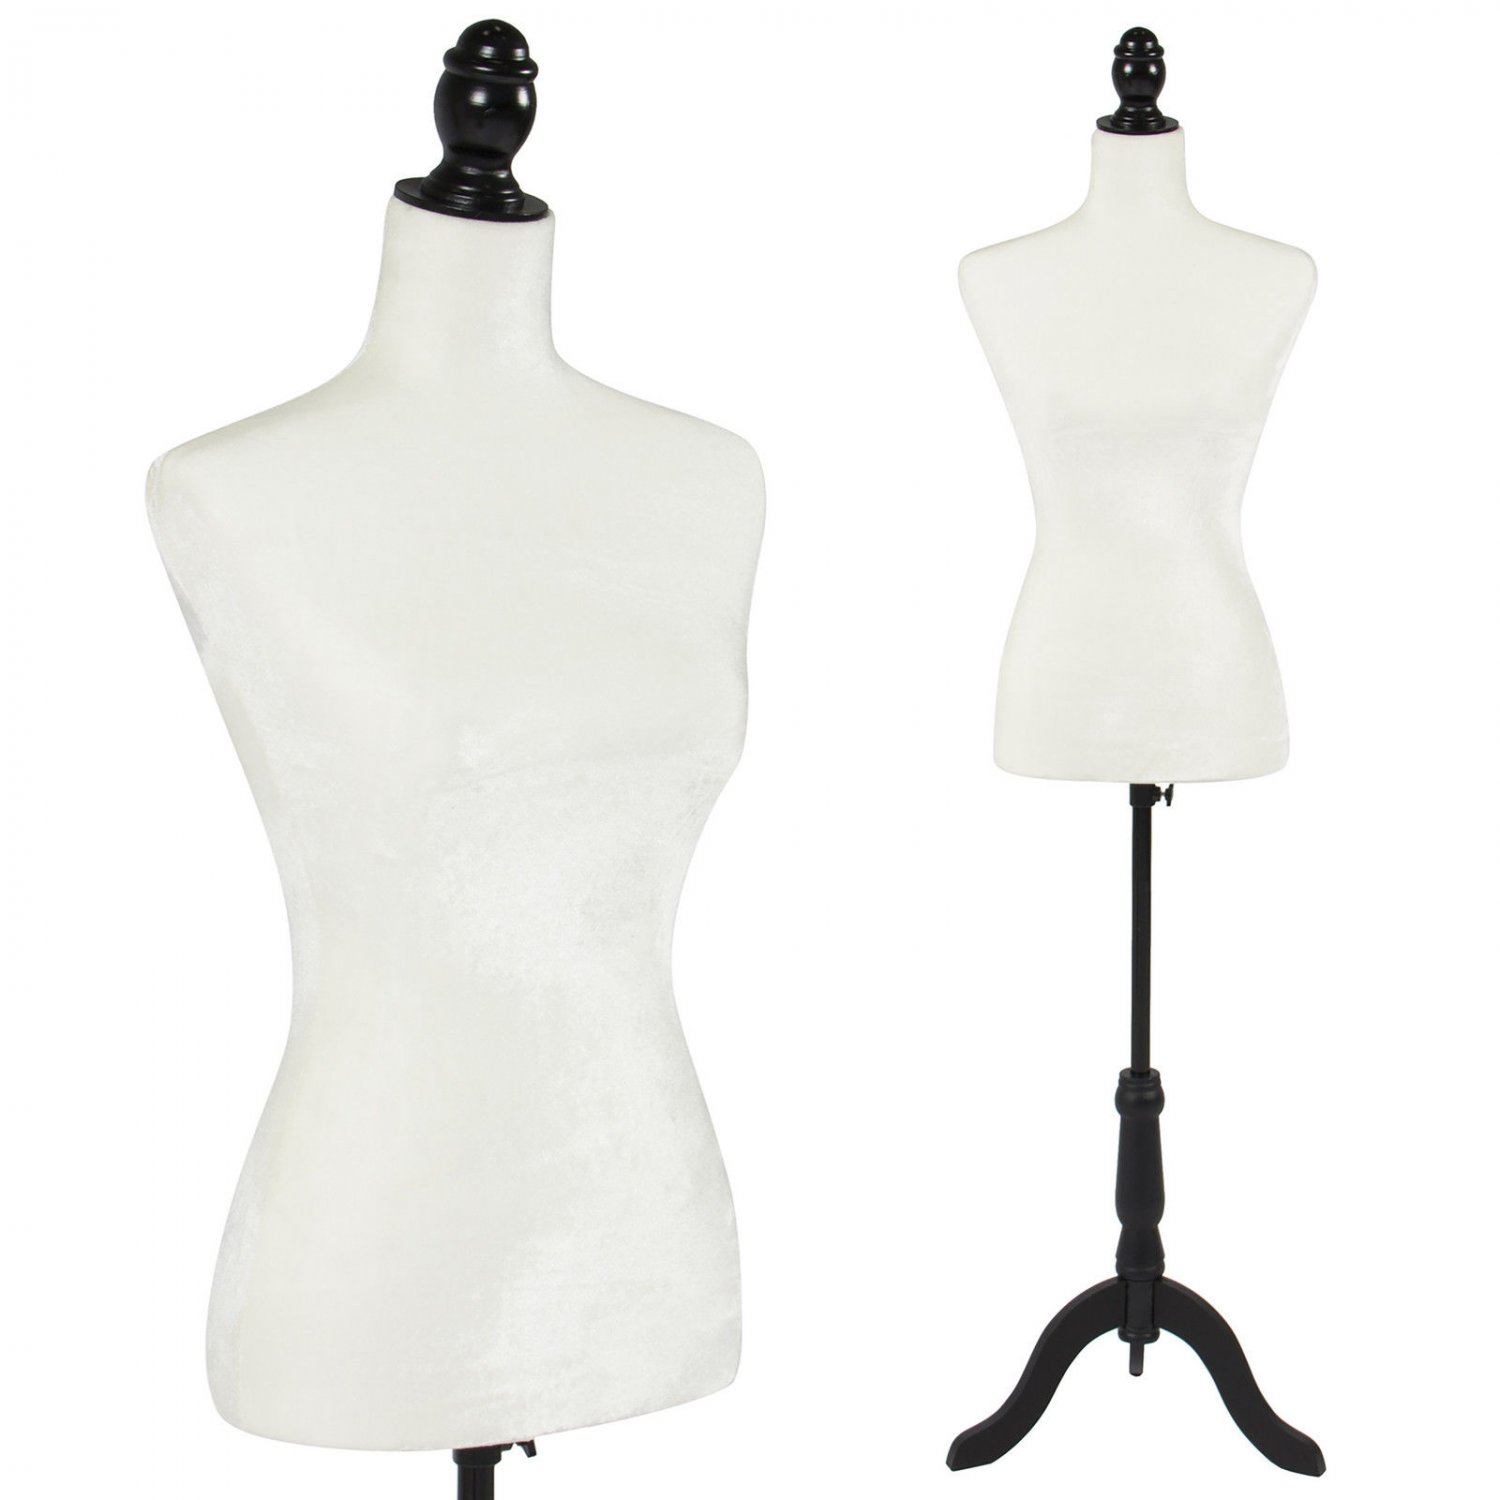 White Female Mannequin Torso Dress Form Display With Black Tripod Stand